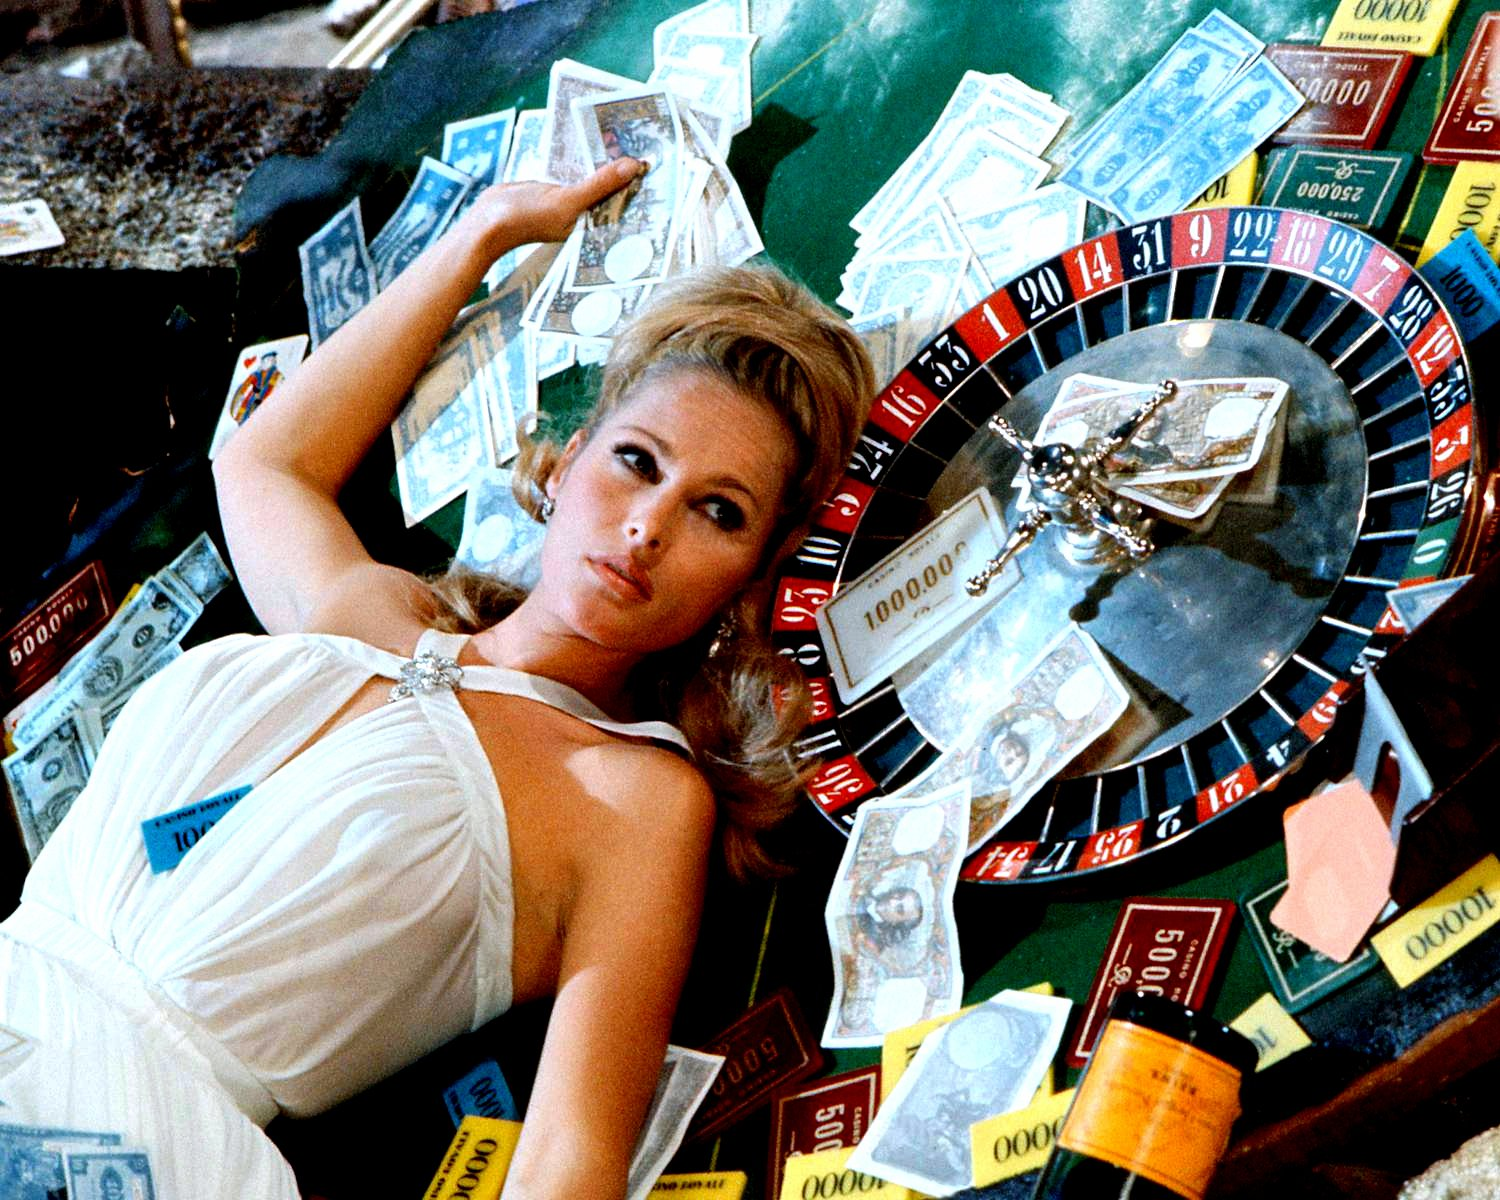 URSULA ANDRESS IN 'CASINO ROYALE' JAMES BOND SPOOF 8X10 PUBLICITY PHOTO (EE-029)